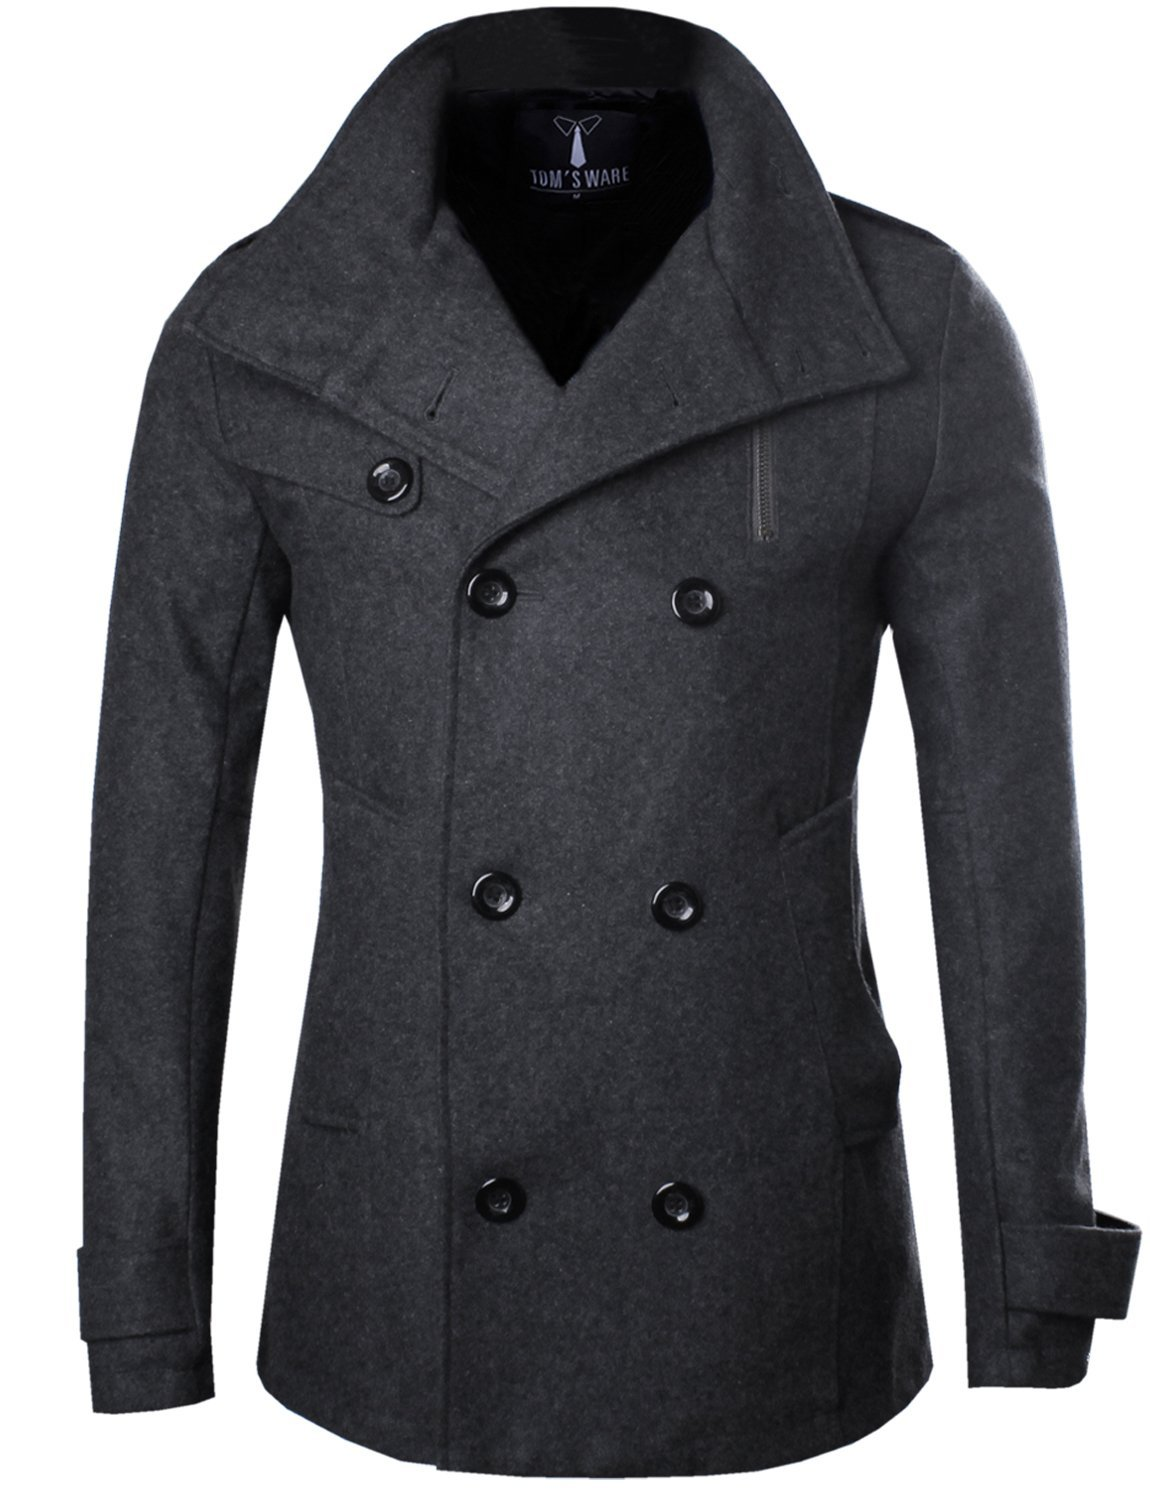 Tom's Ware Mens Stylish Fashion Classic Wool Double Breasted Pea Coat TWCC08-CHARCOAL-US M